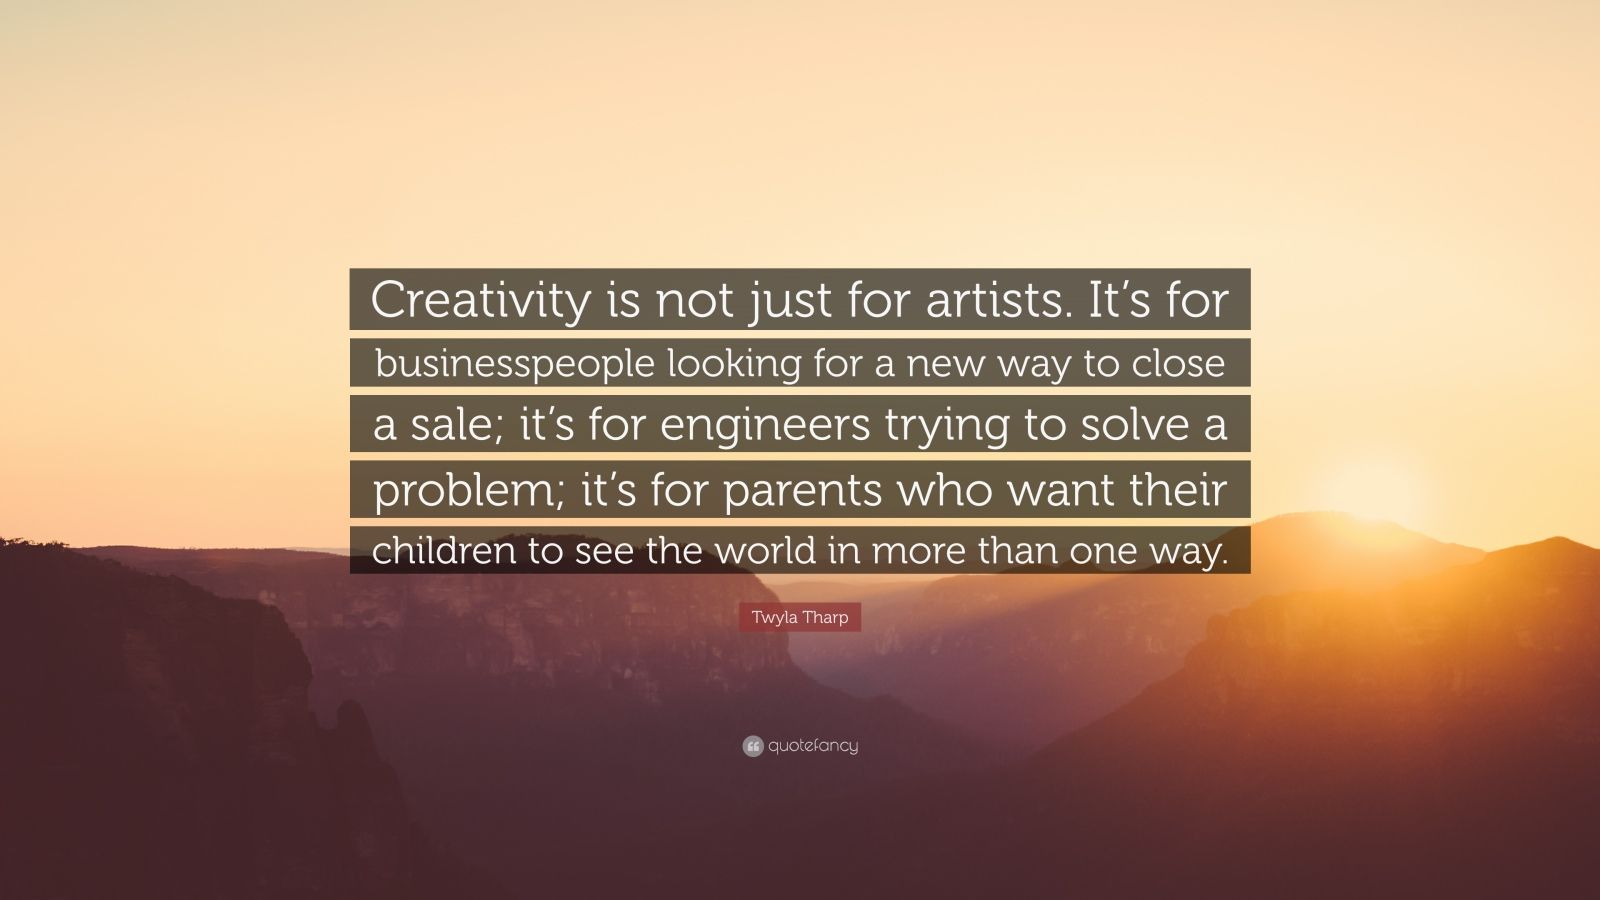 """Twyla Tharp Quote: """"Creativity is not just for artists. It's for businesspeople looking for a new way to close a sale; it's for engineers trying to solve a problem; it's for parents who want their children to see the world in more than one way."""""""